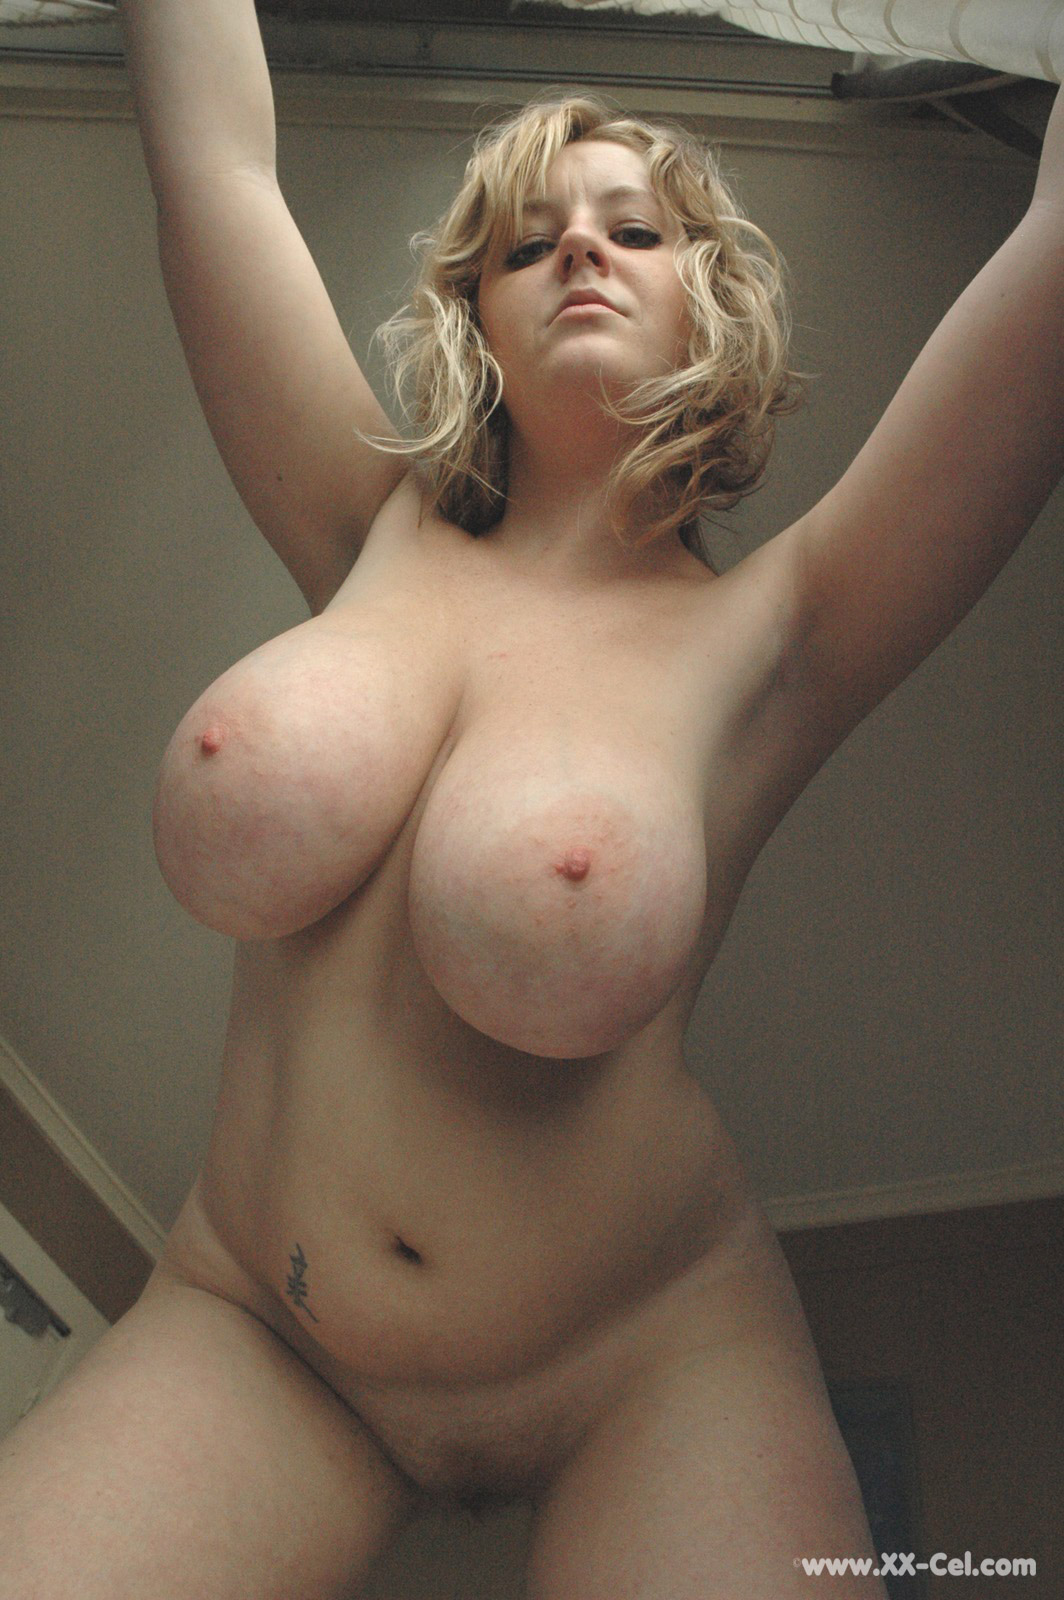 Clean, recently Black granny booty tube busty and very dirty